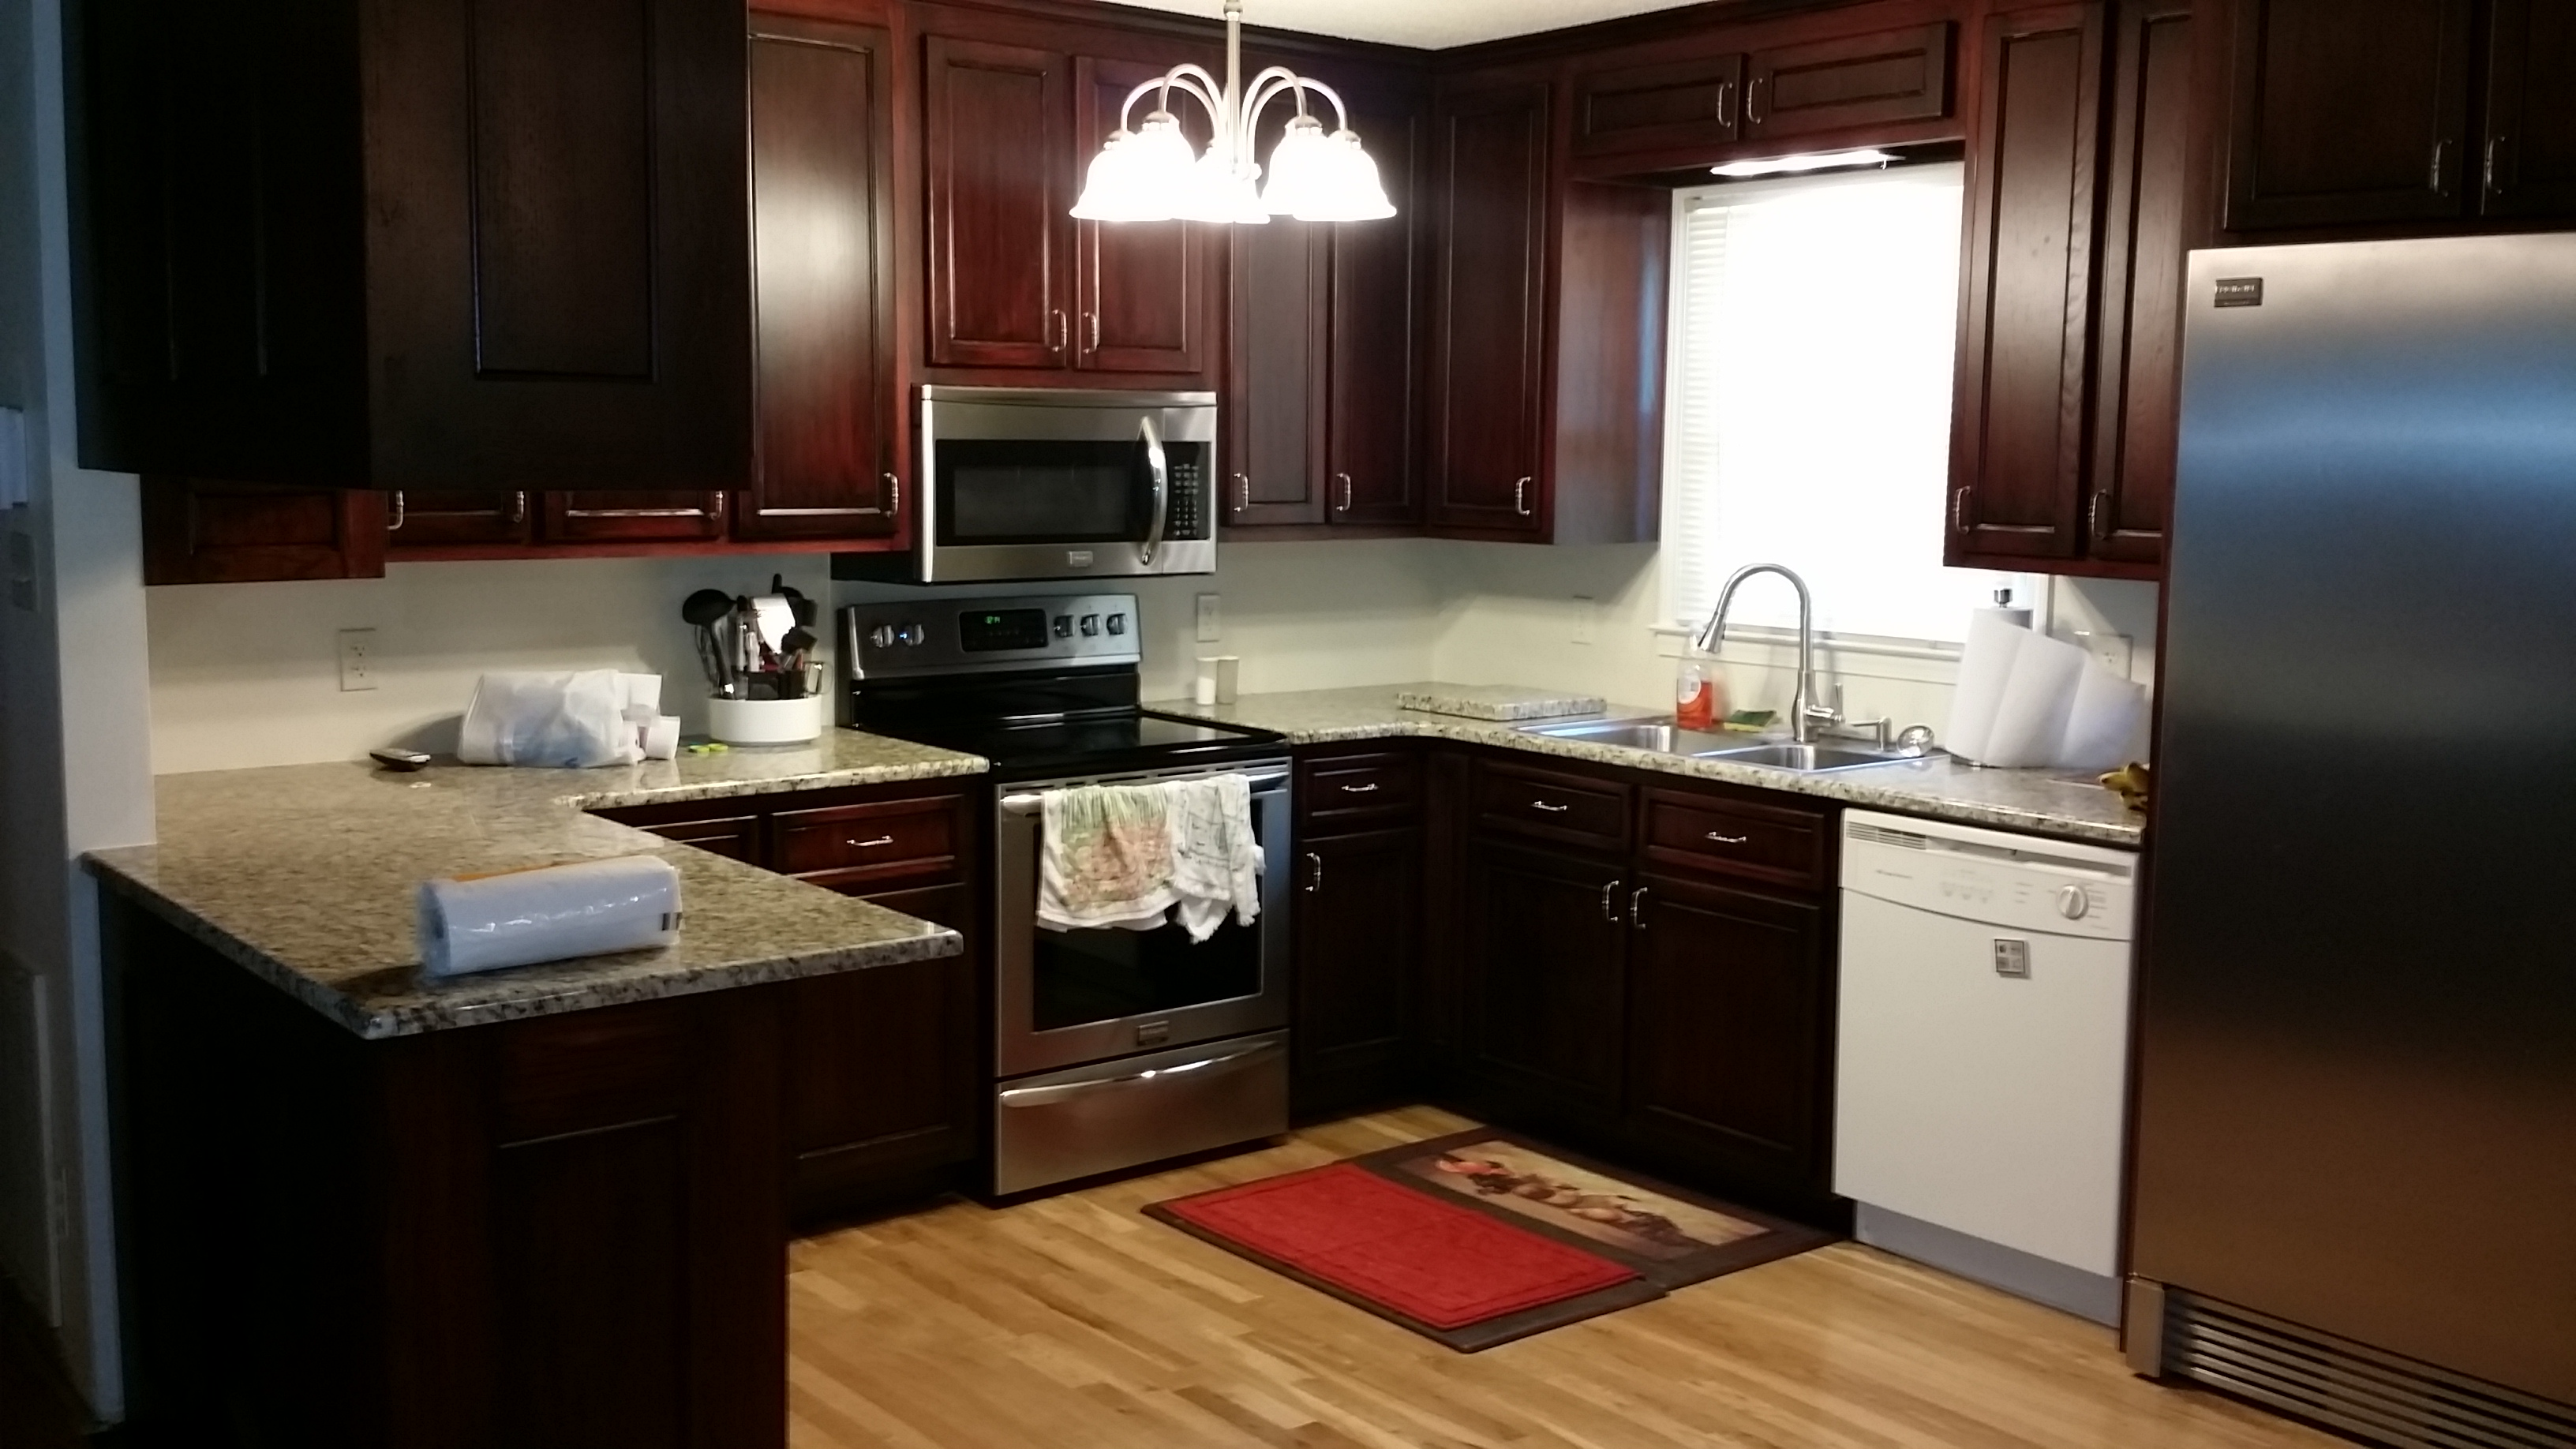 Allsource remodeling and custom cabinets for Custom built kitchen cabinets